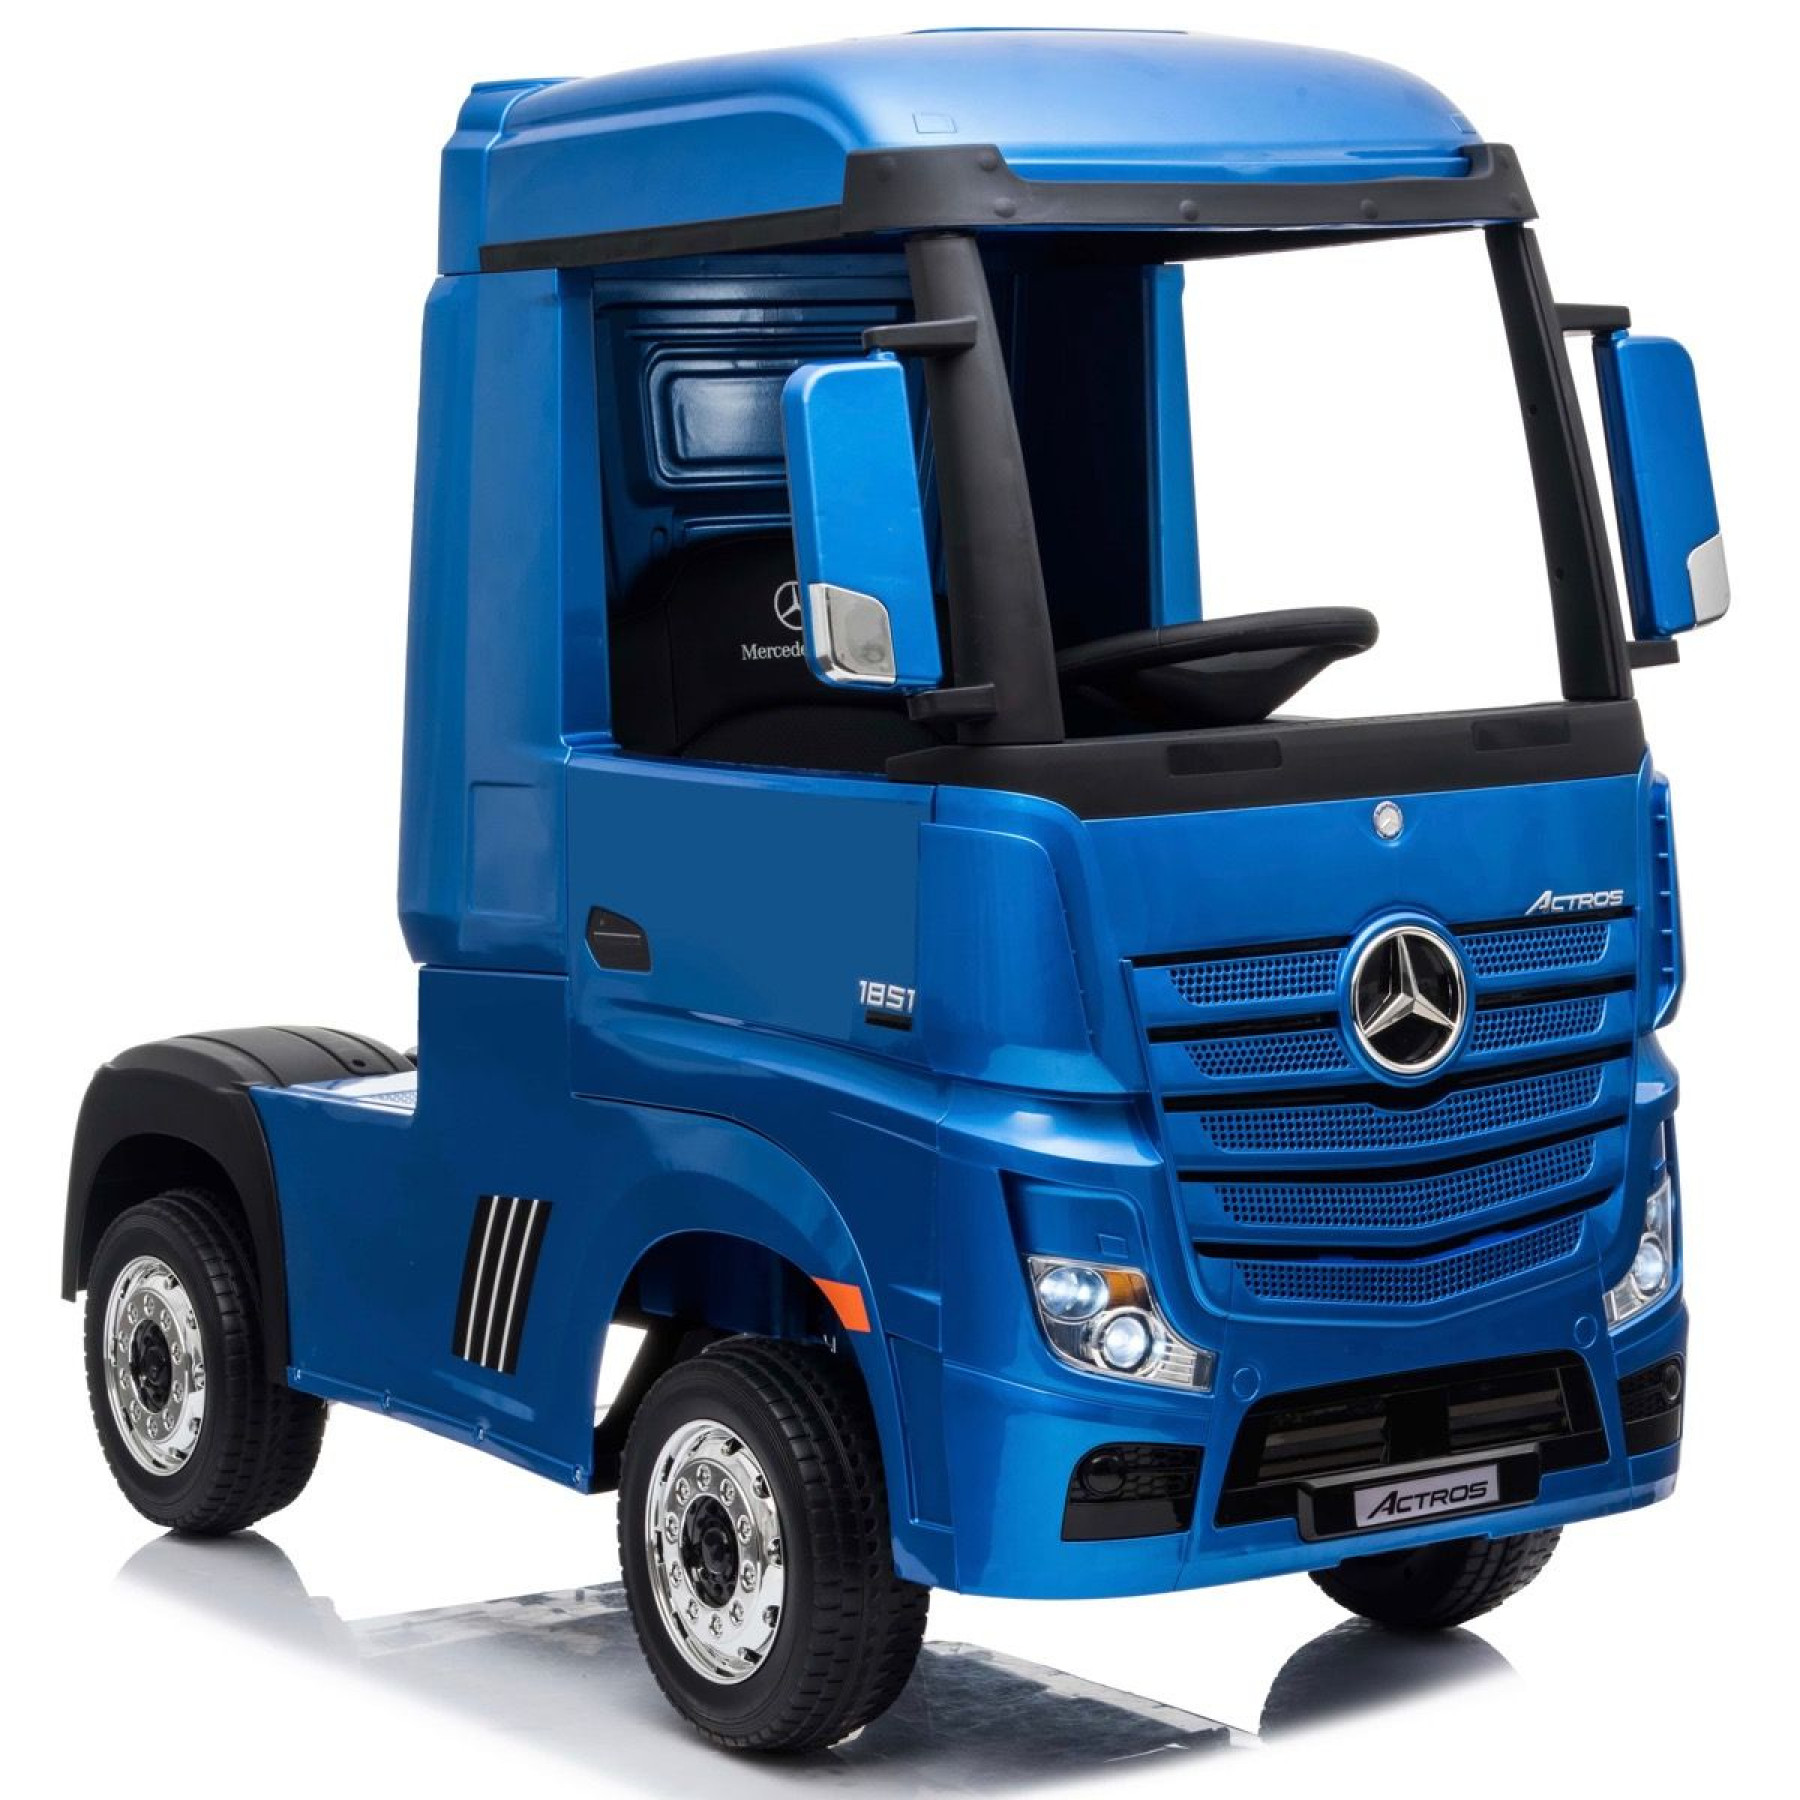 Xtreme 24V 4WD Licensed Mercedes Benz Ride on Electric Lorry Truck Painted Metallic Blue